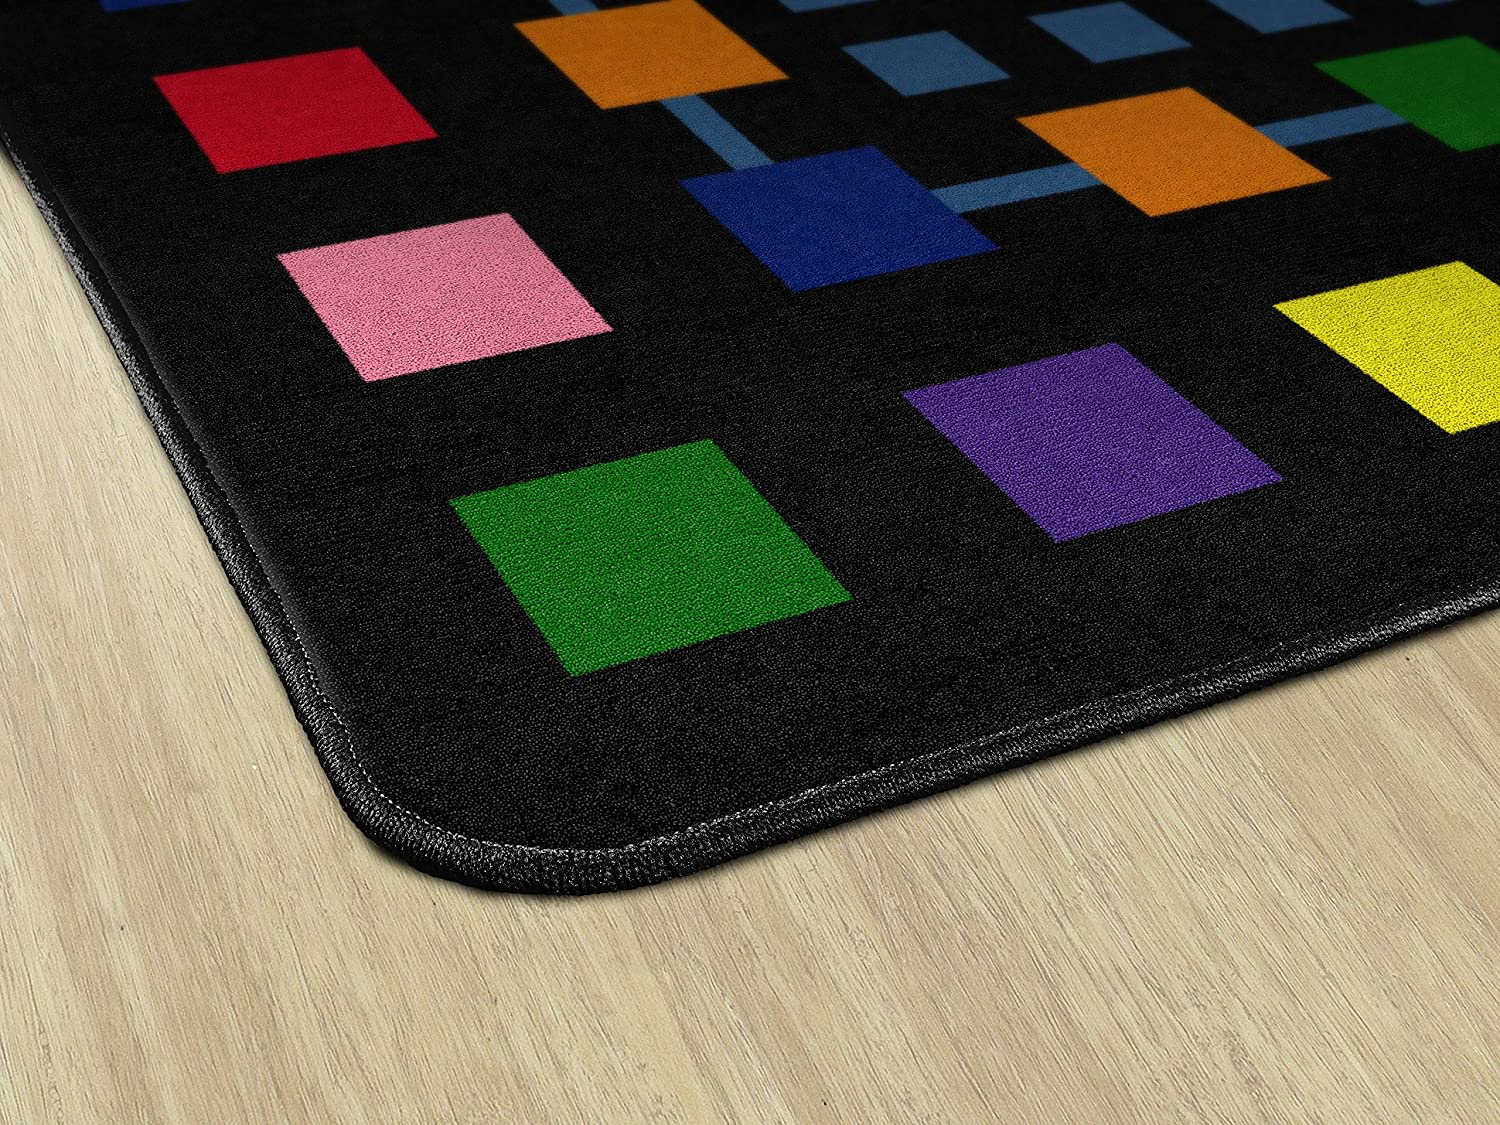 510x84 Rectangle Childrens Classroom Educational Rug Flagship Carpets FE157-32A Rebordered Squares Black